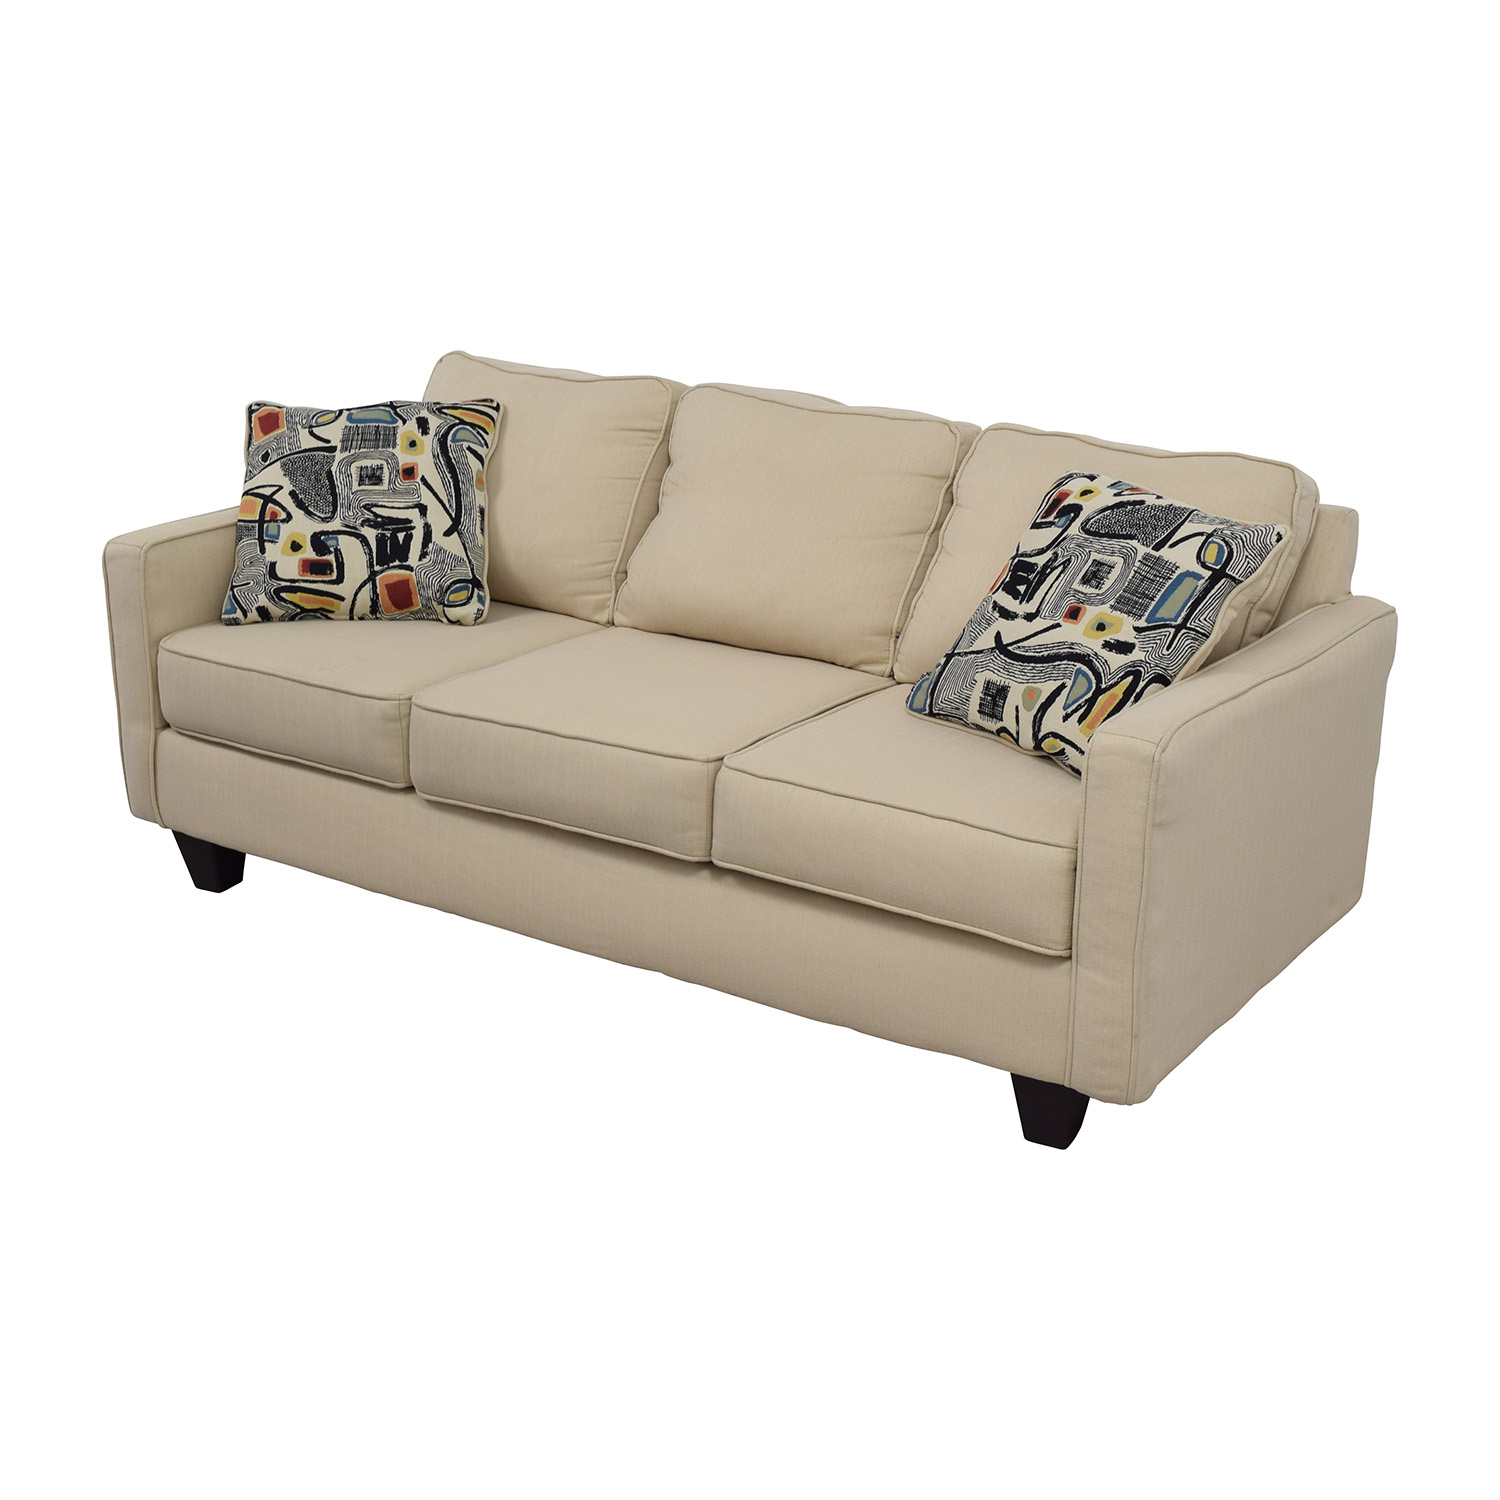 wayfair furniture sofa black leather singapore 52 off allmodern three cushion beige